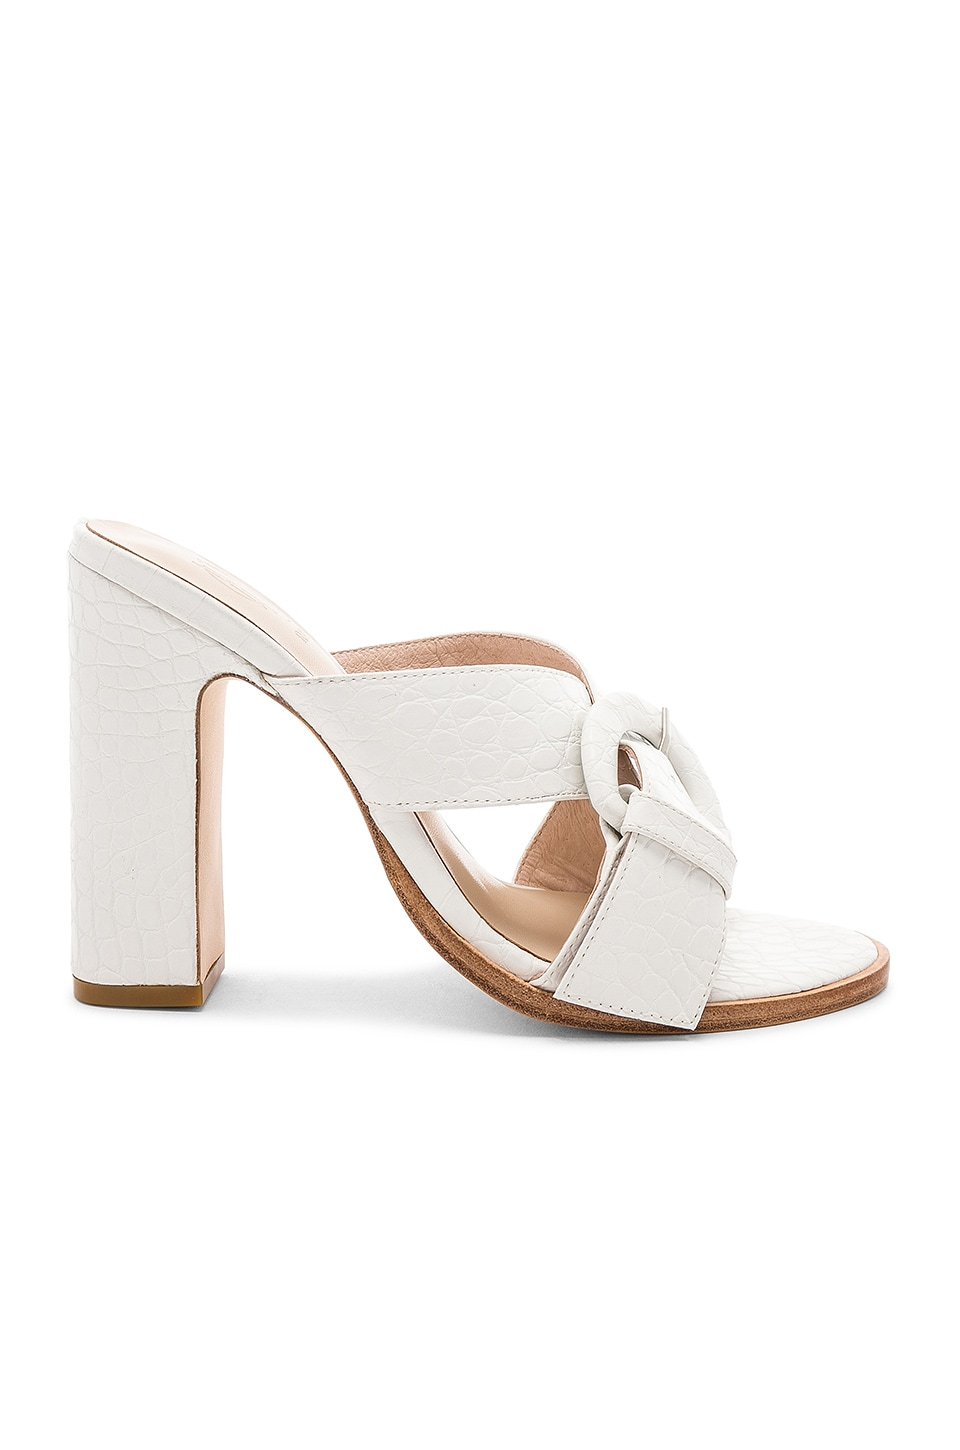 RAYE x House Of Harlow 1960 Hyland Mule in White